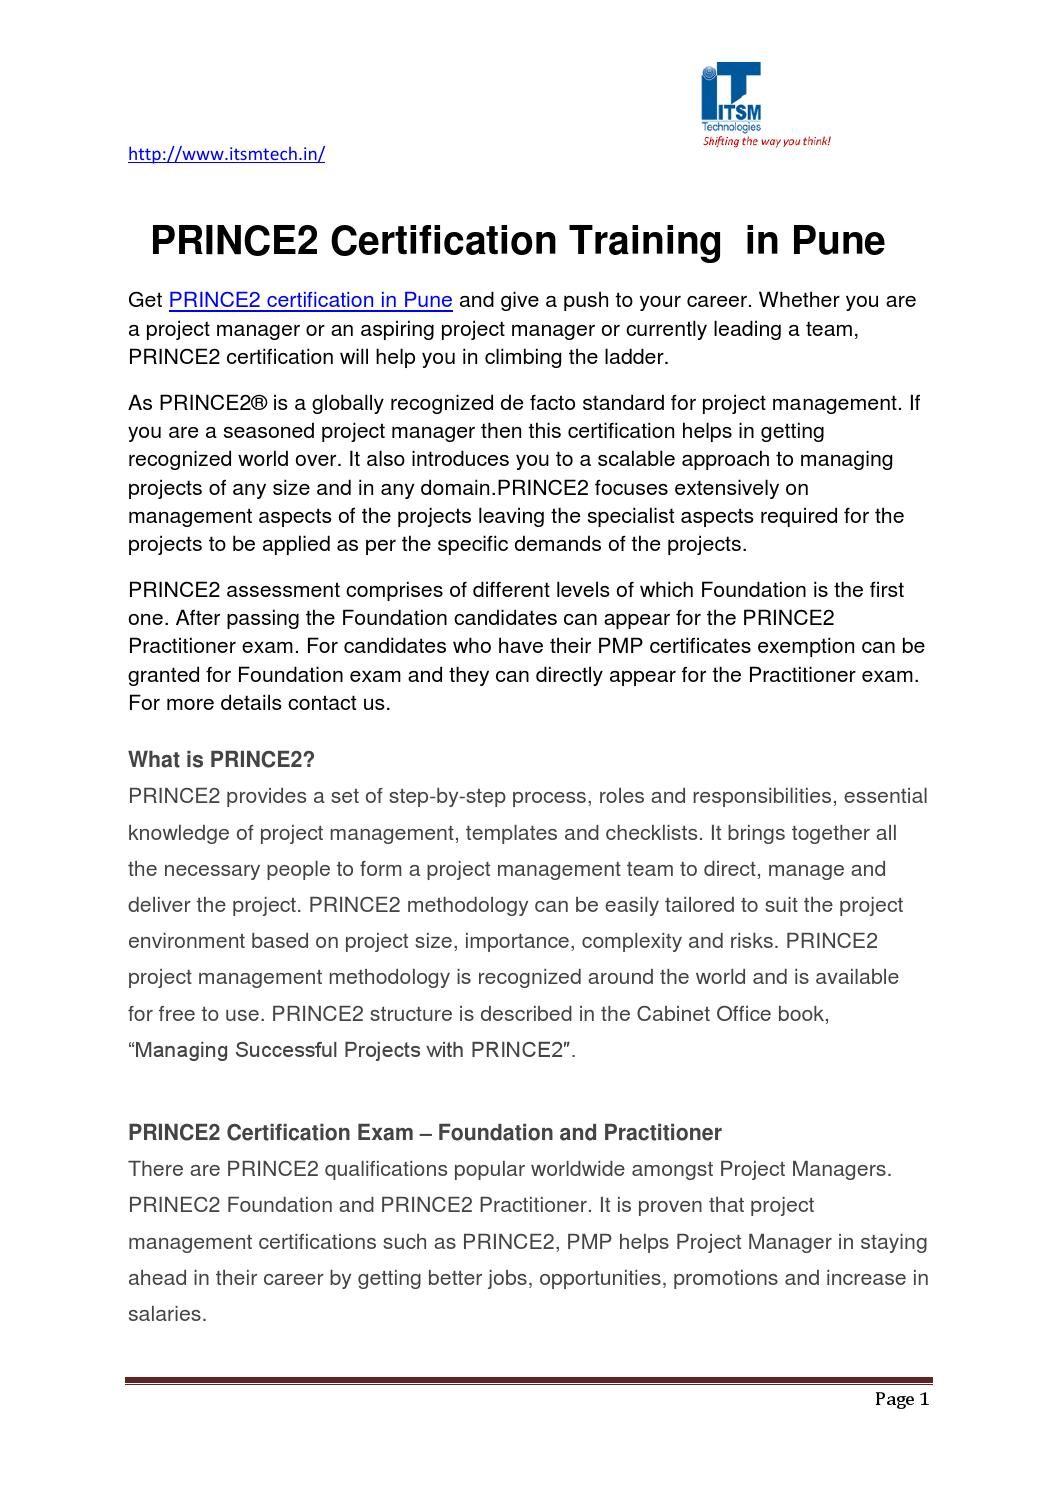 Prince2 certification training in pune by brainmineae1 issuu xflitez Images